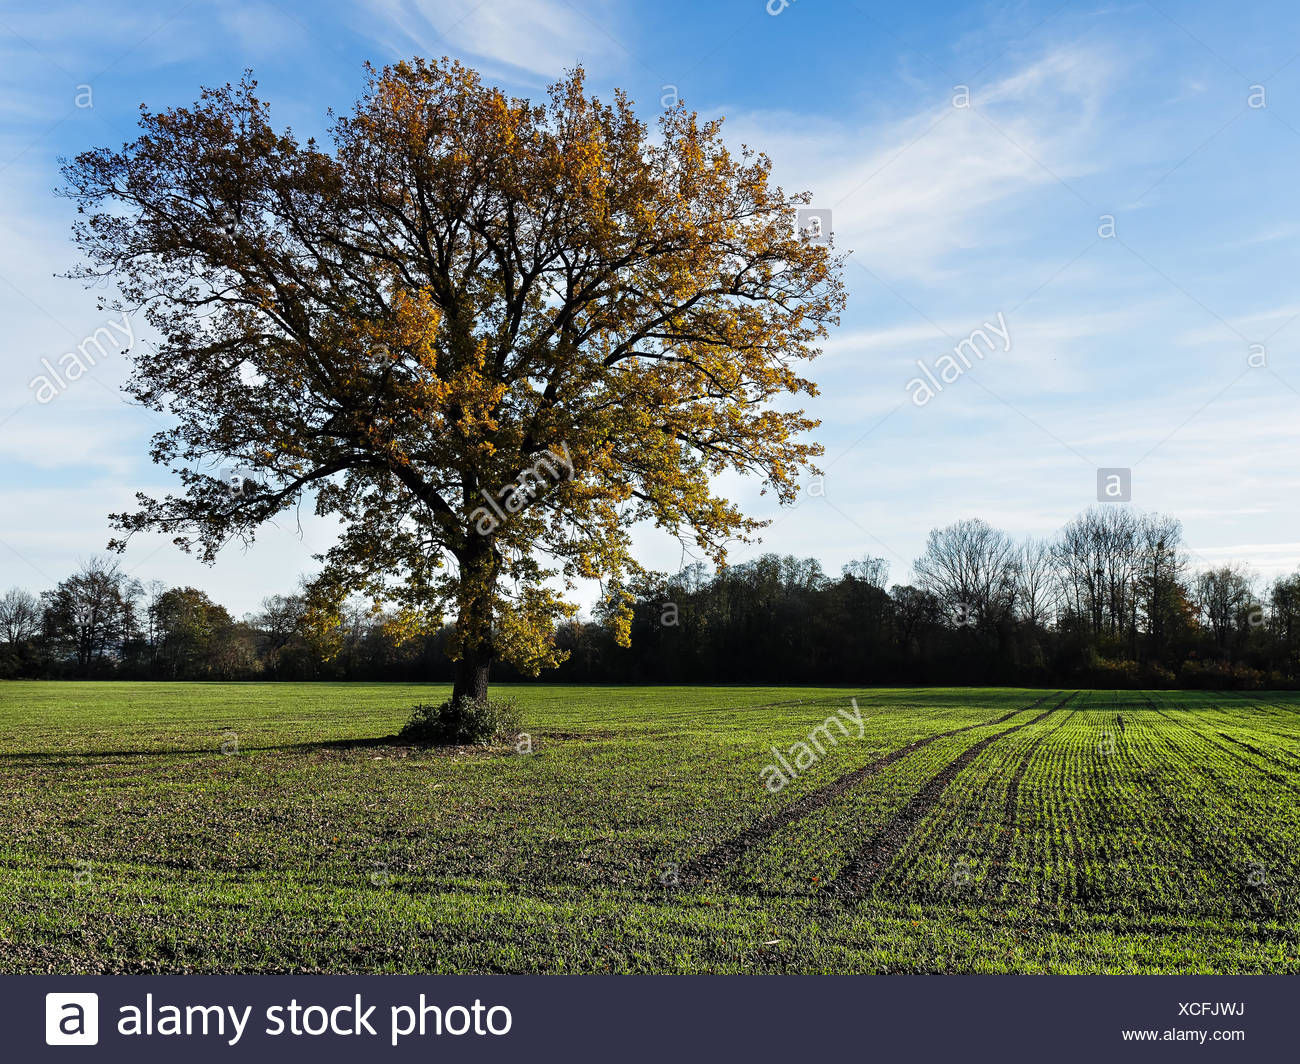 Oaks in the wheat field - Stock Image